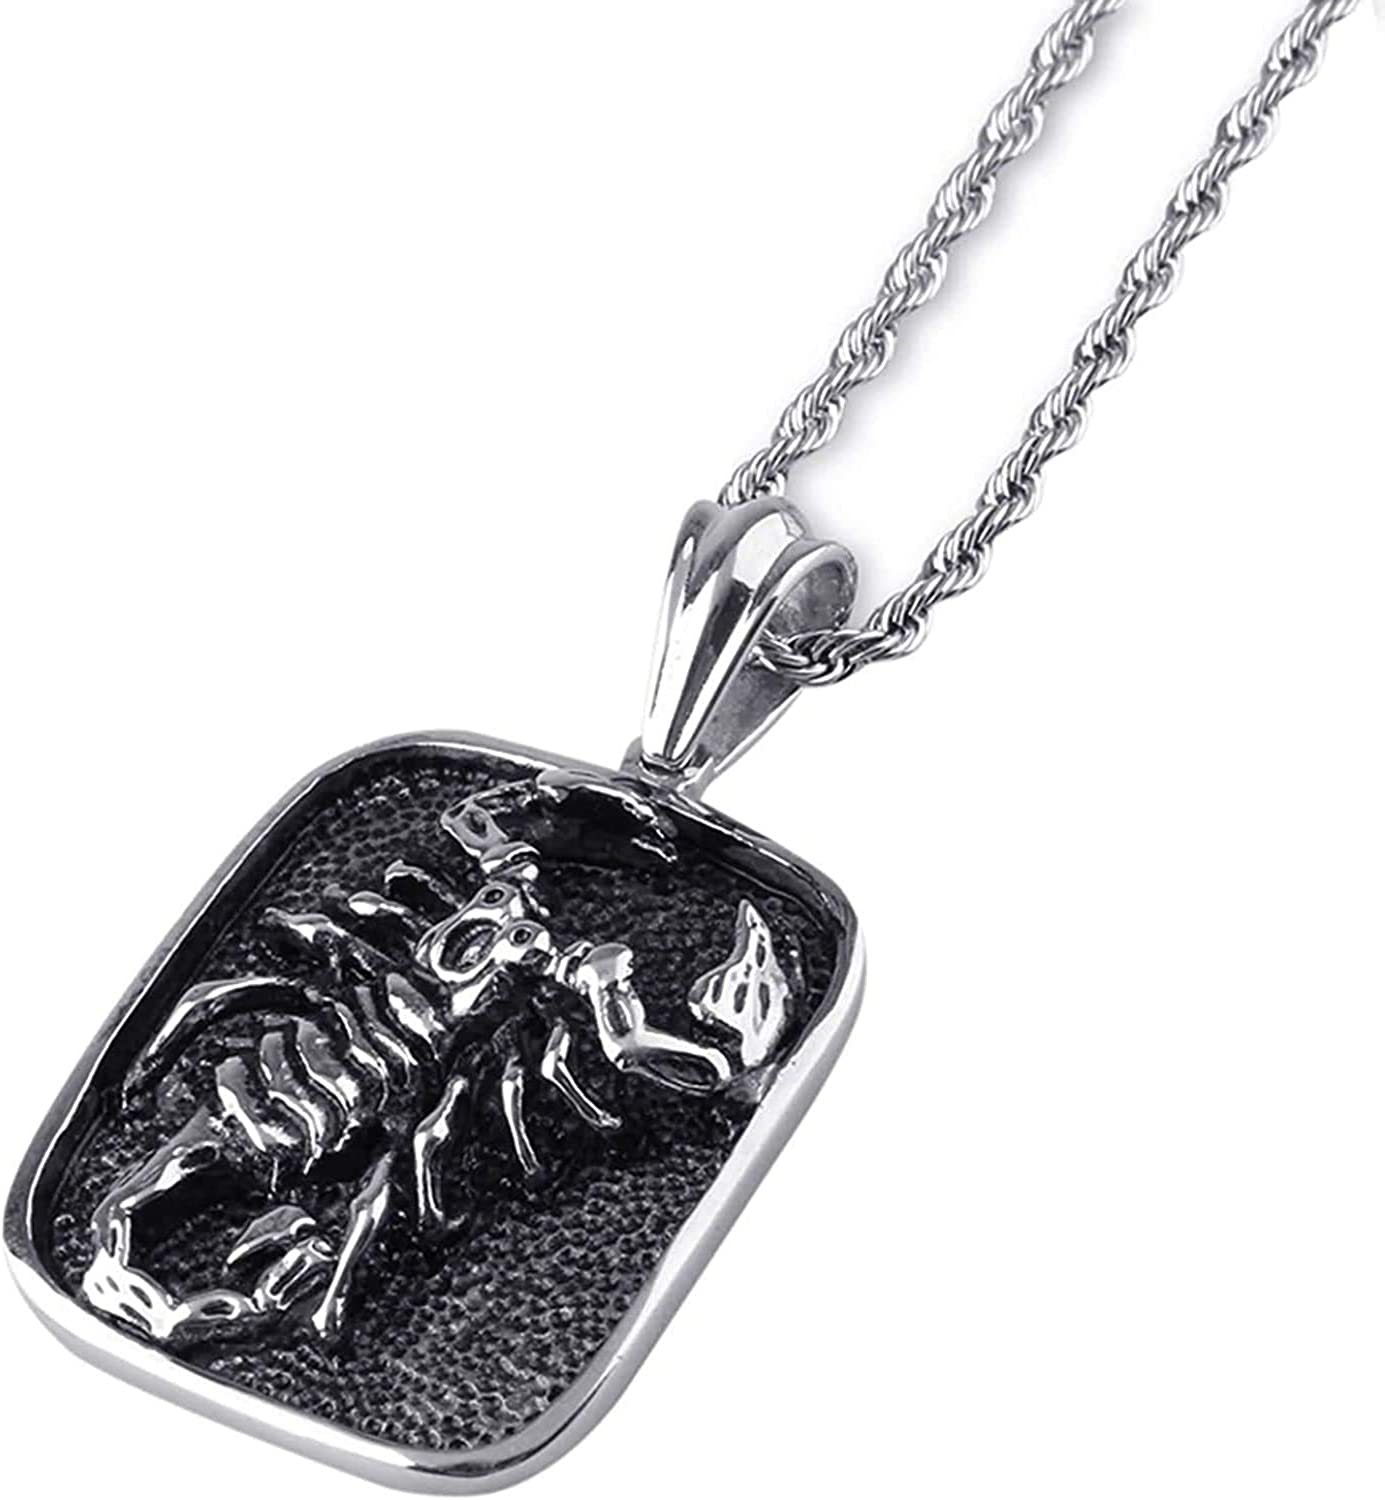 LOPEZ KENT Pendant Necklace for Men Stainless Steel Scorpion Black Necklace Silver